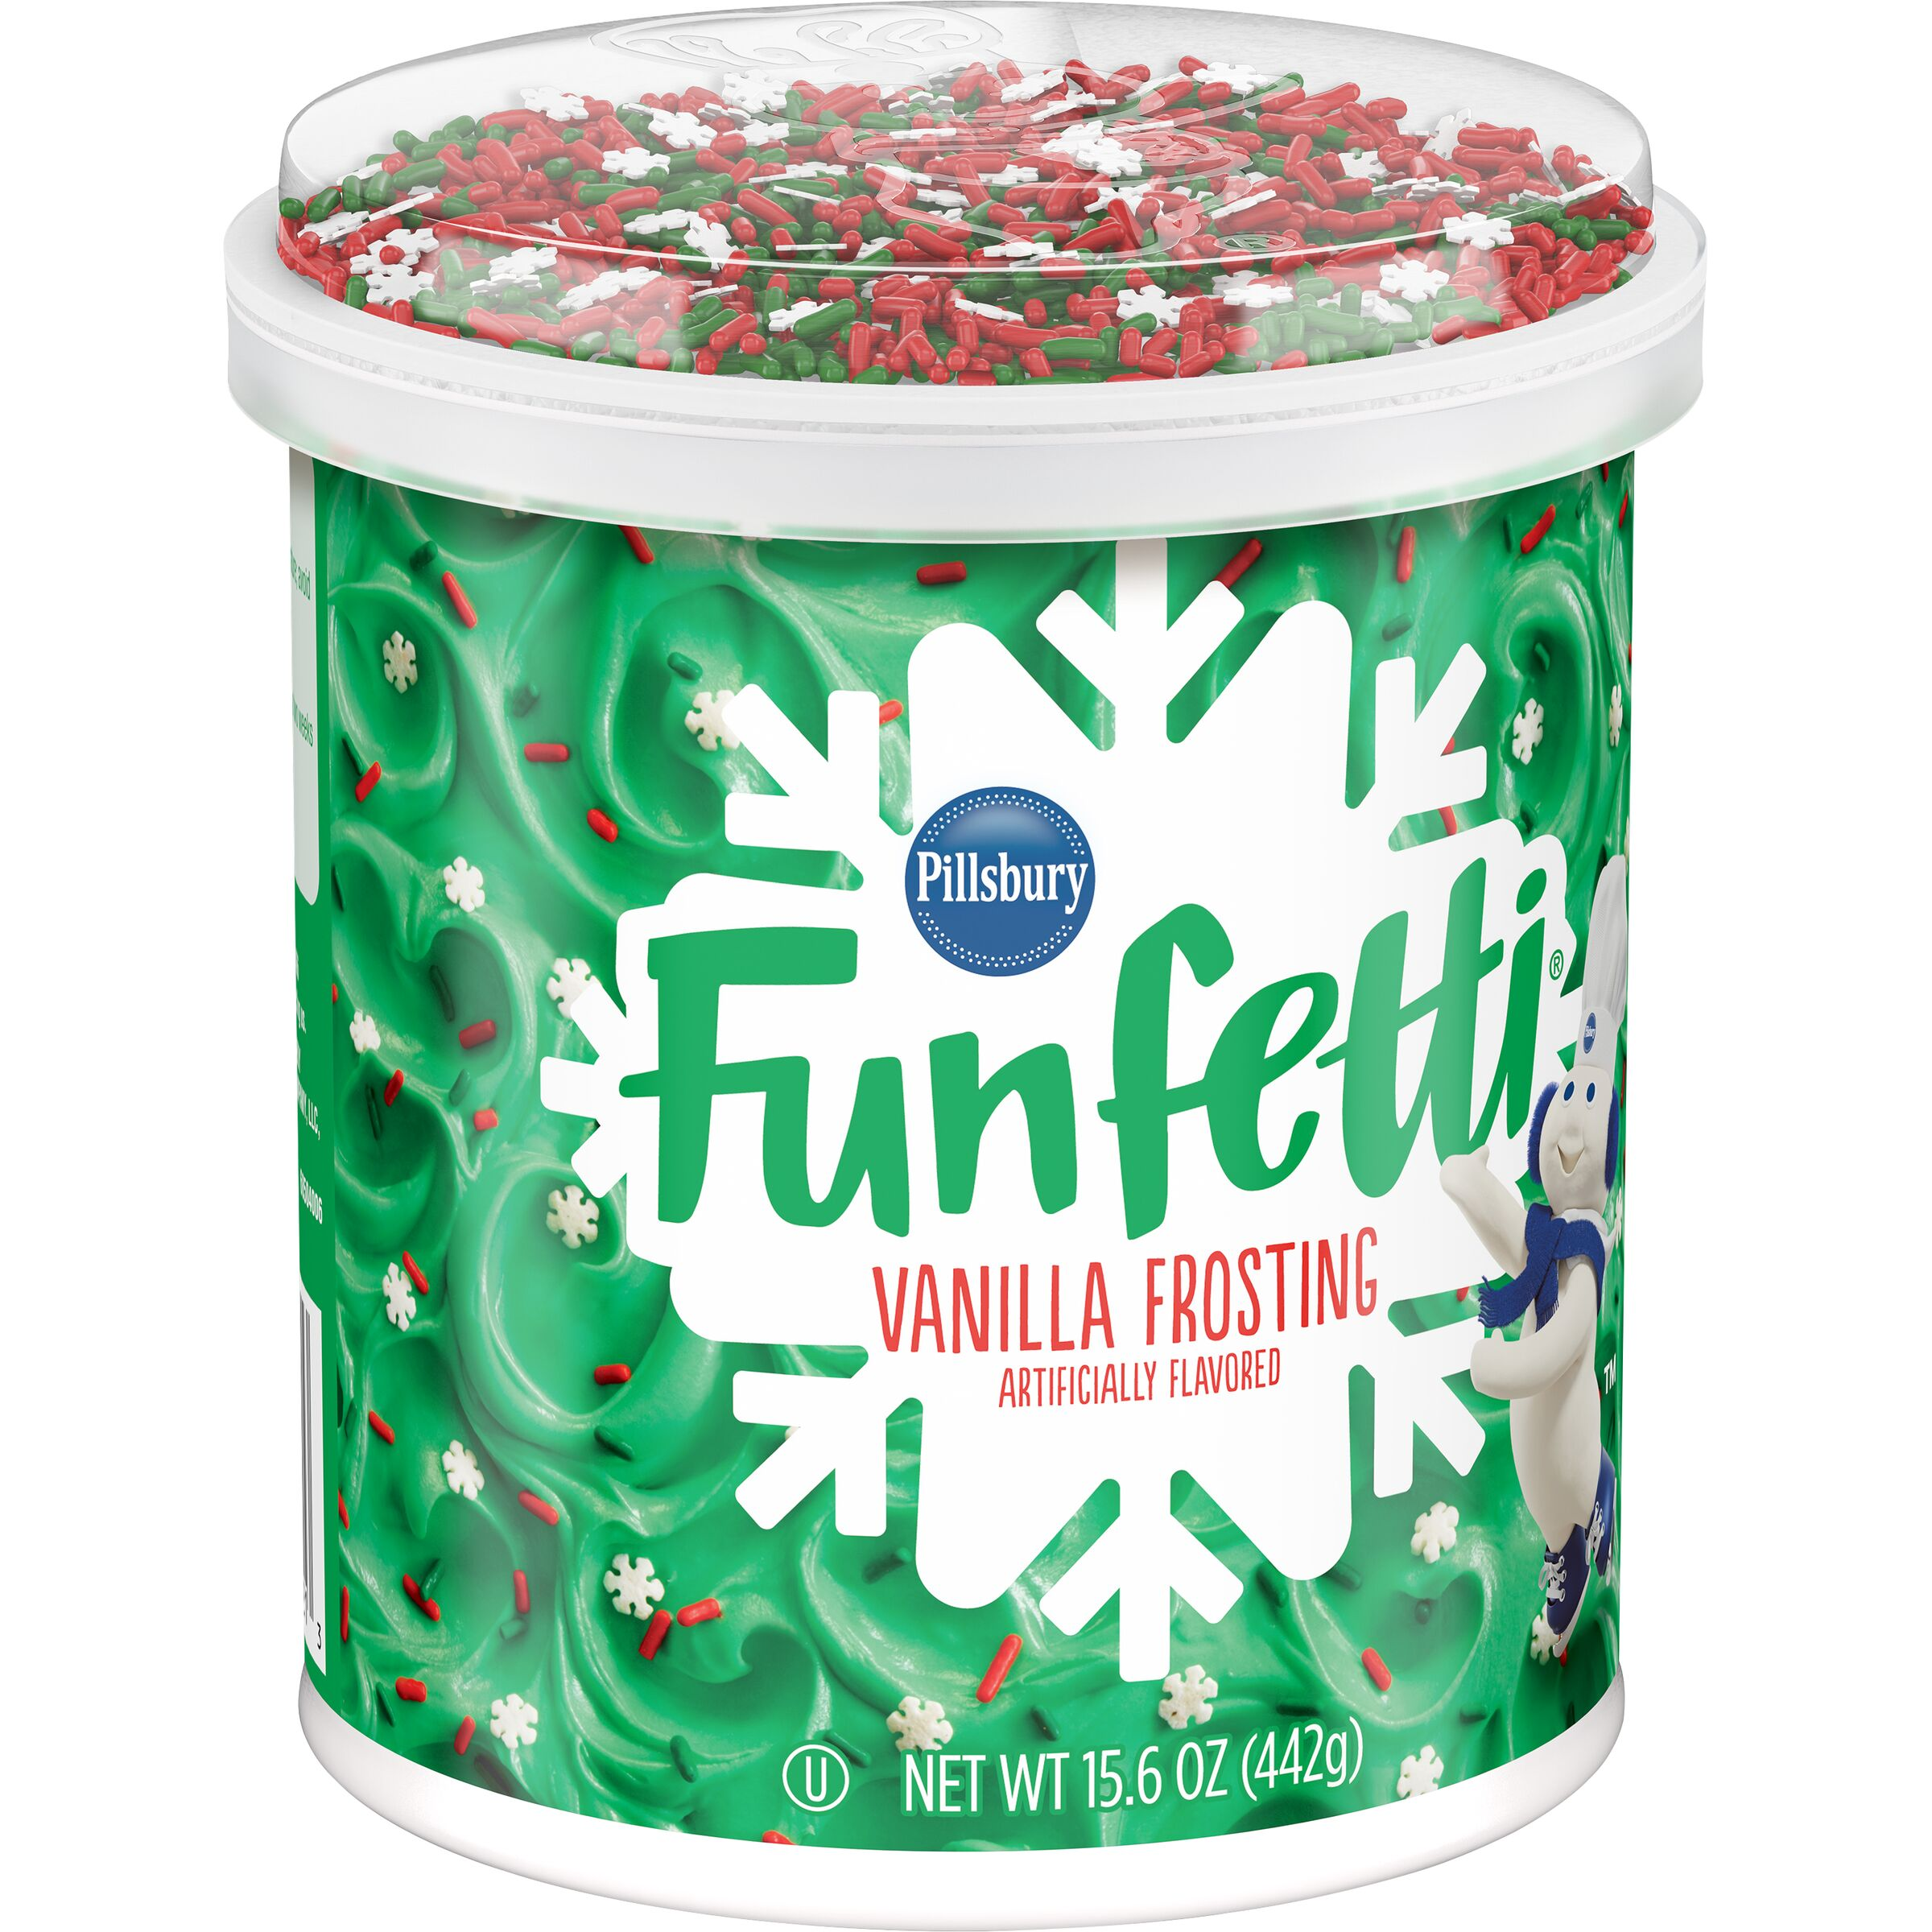 Pillsbury Funfetti Holiday Vanilla Flavored Frosting